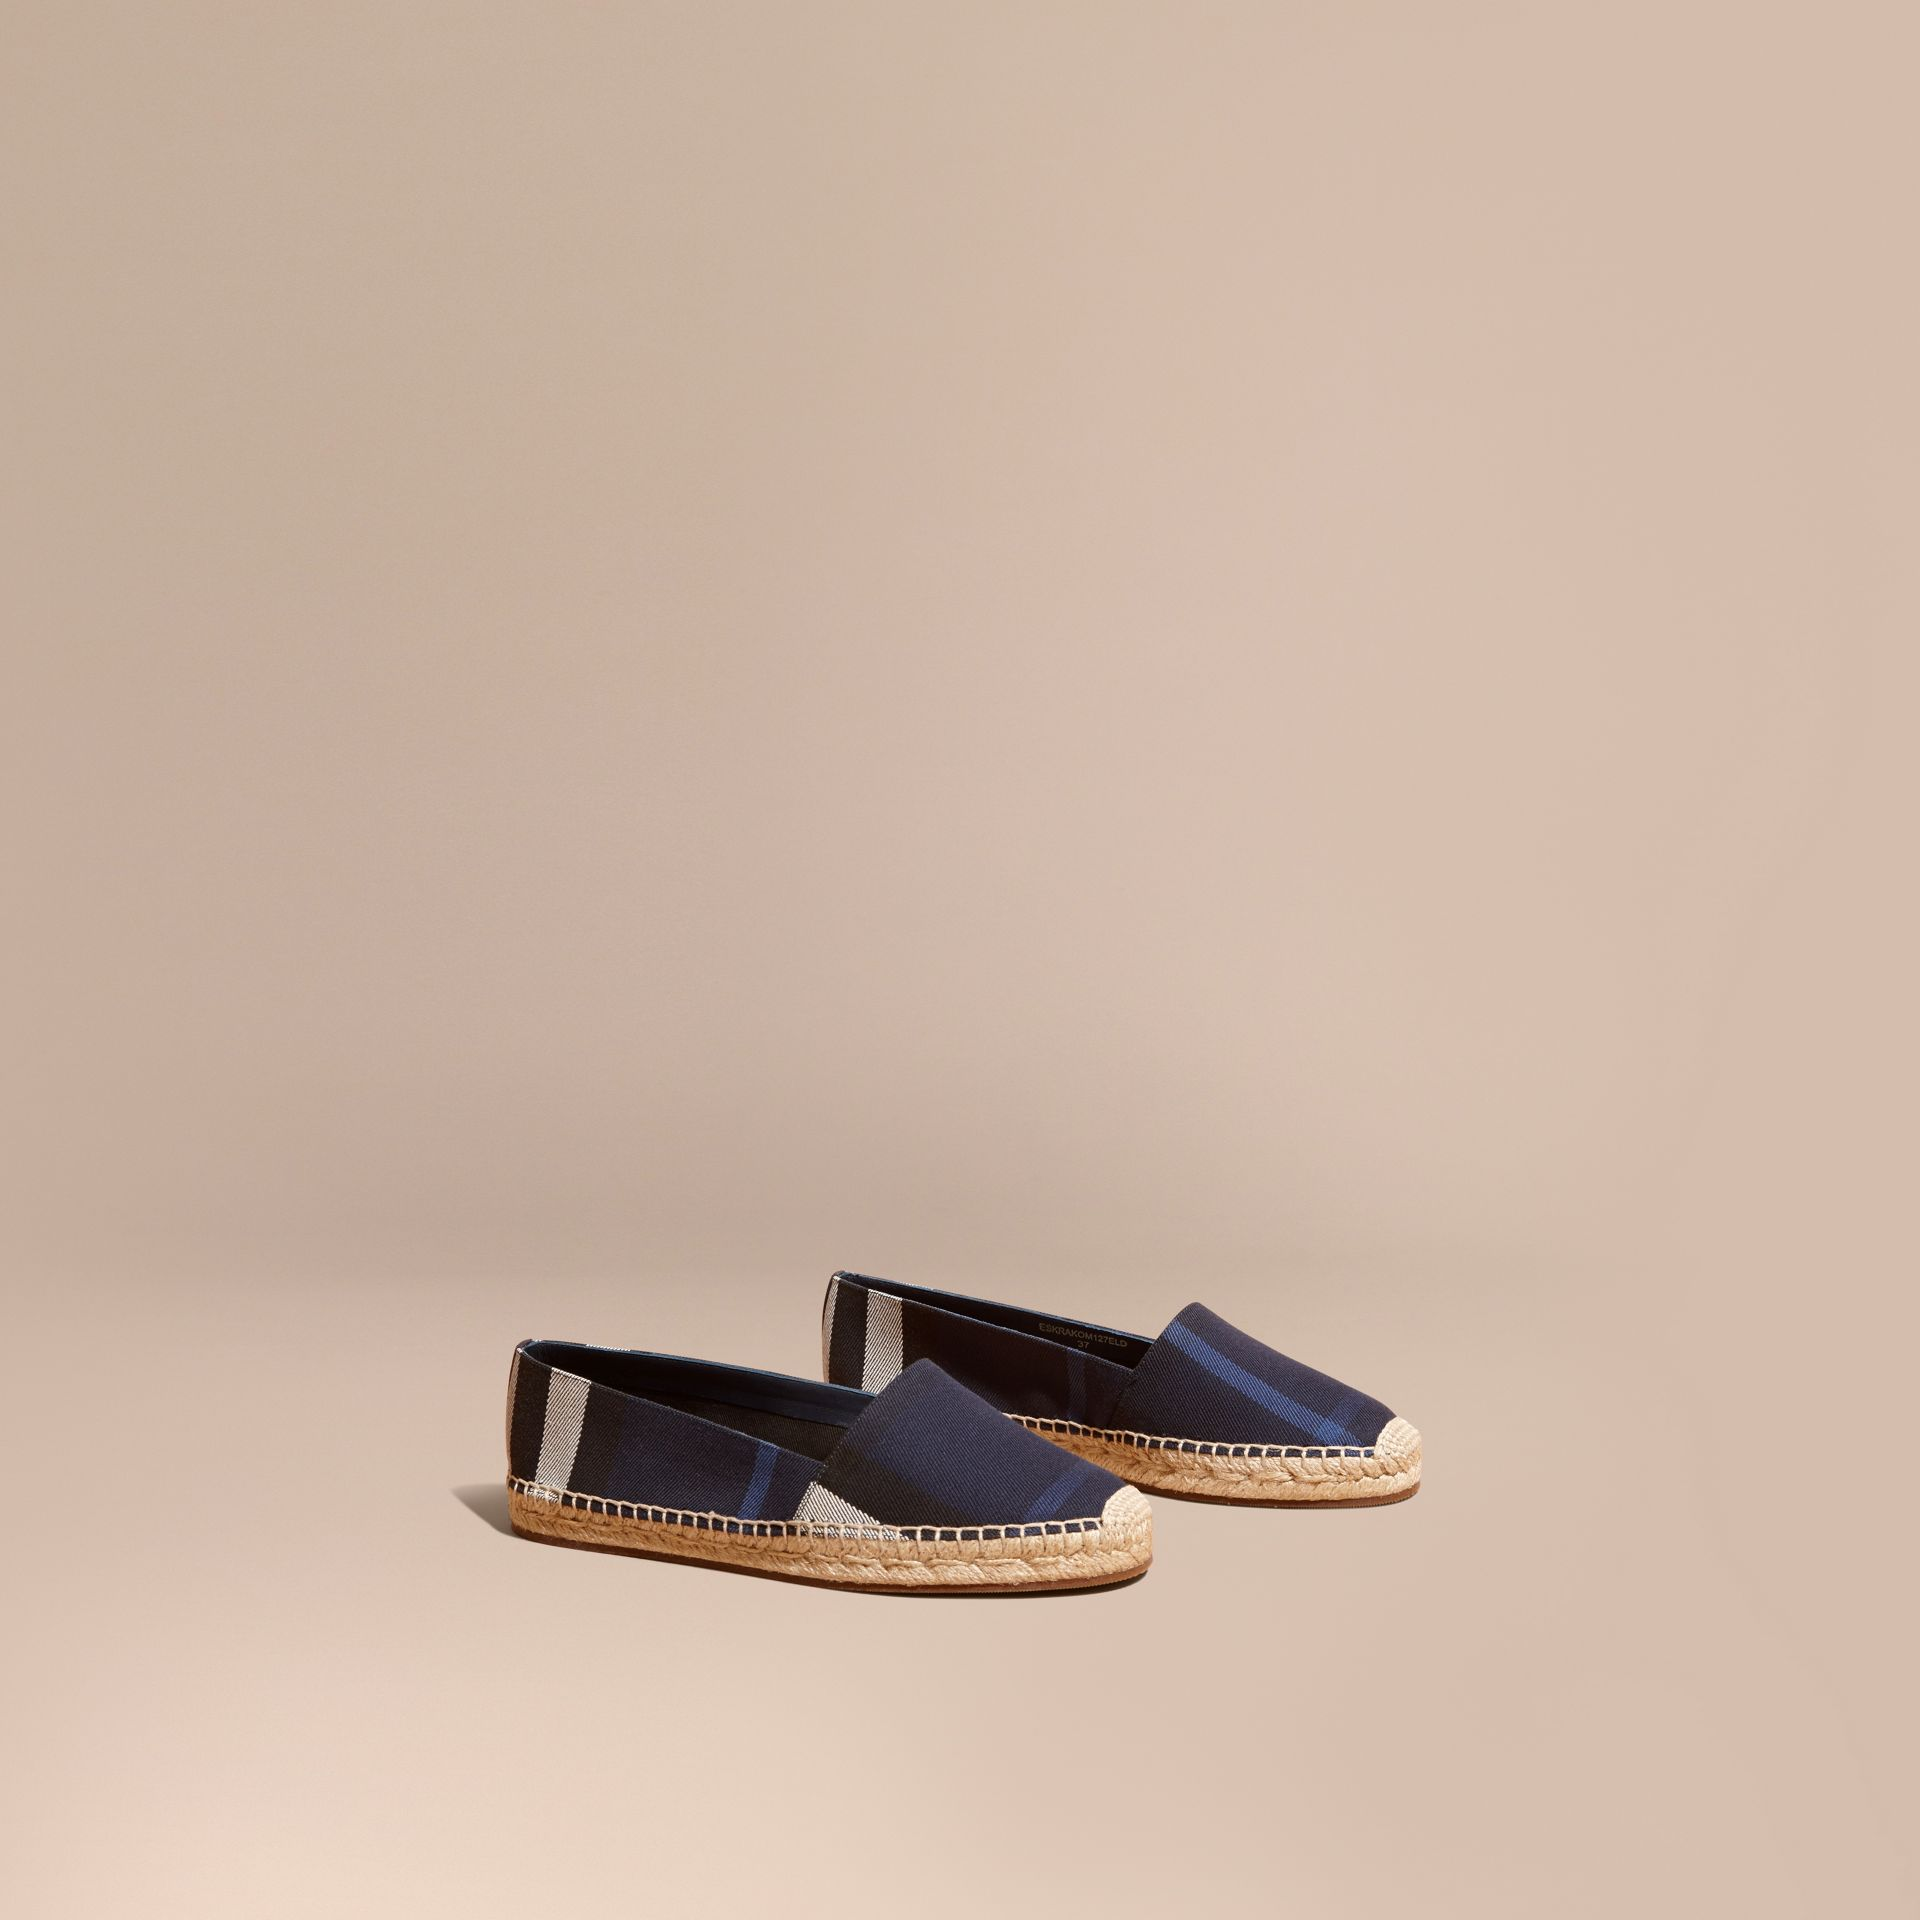 Indigo blue Leather Trim Canvas Check Espadrilles Indigo Blue - gallery image 1